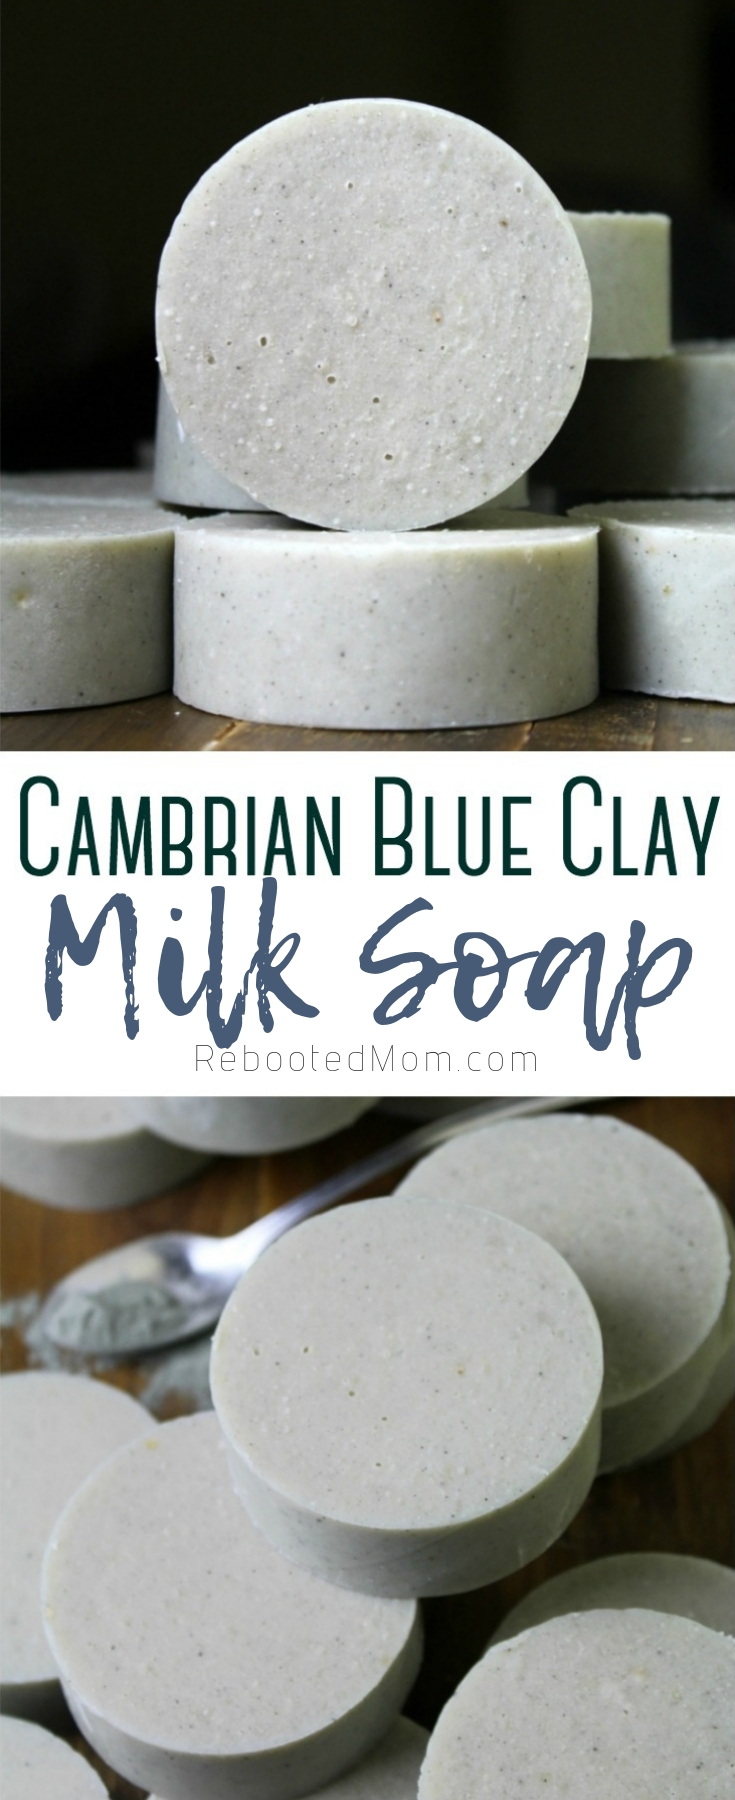 Cambrian Blue Clay and Milk Soap, made with raw milk, grass-fed and finished tallow and Cambrian blue clay. Great for sensitive skin!